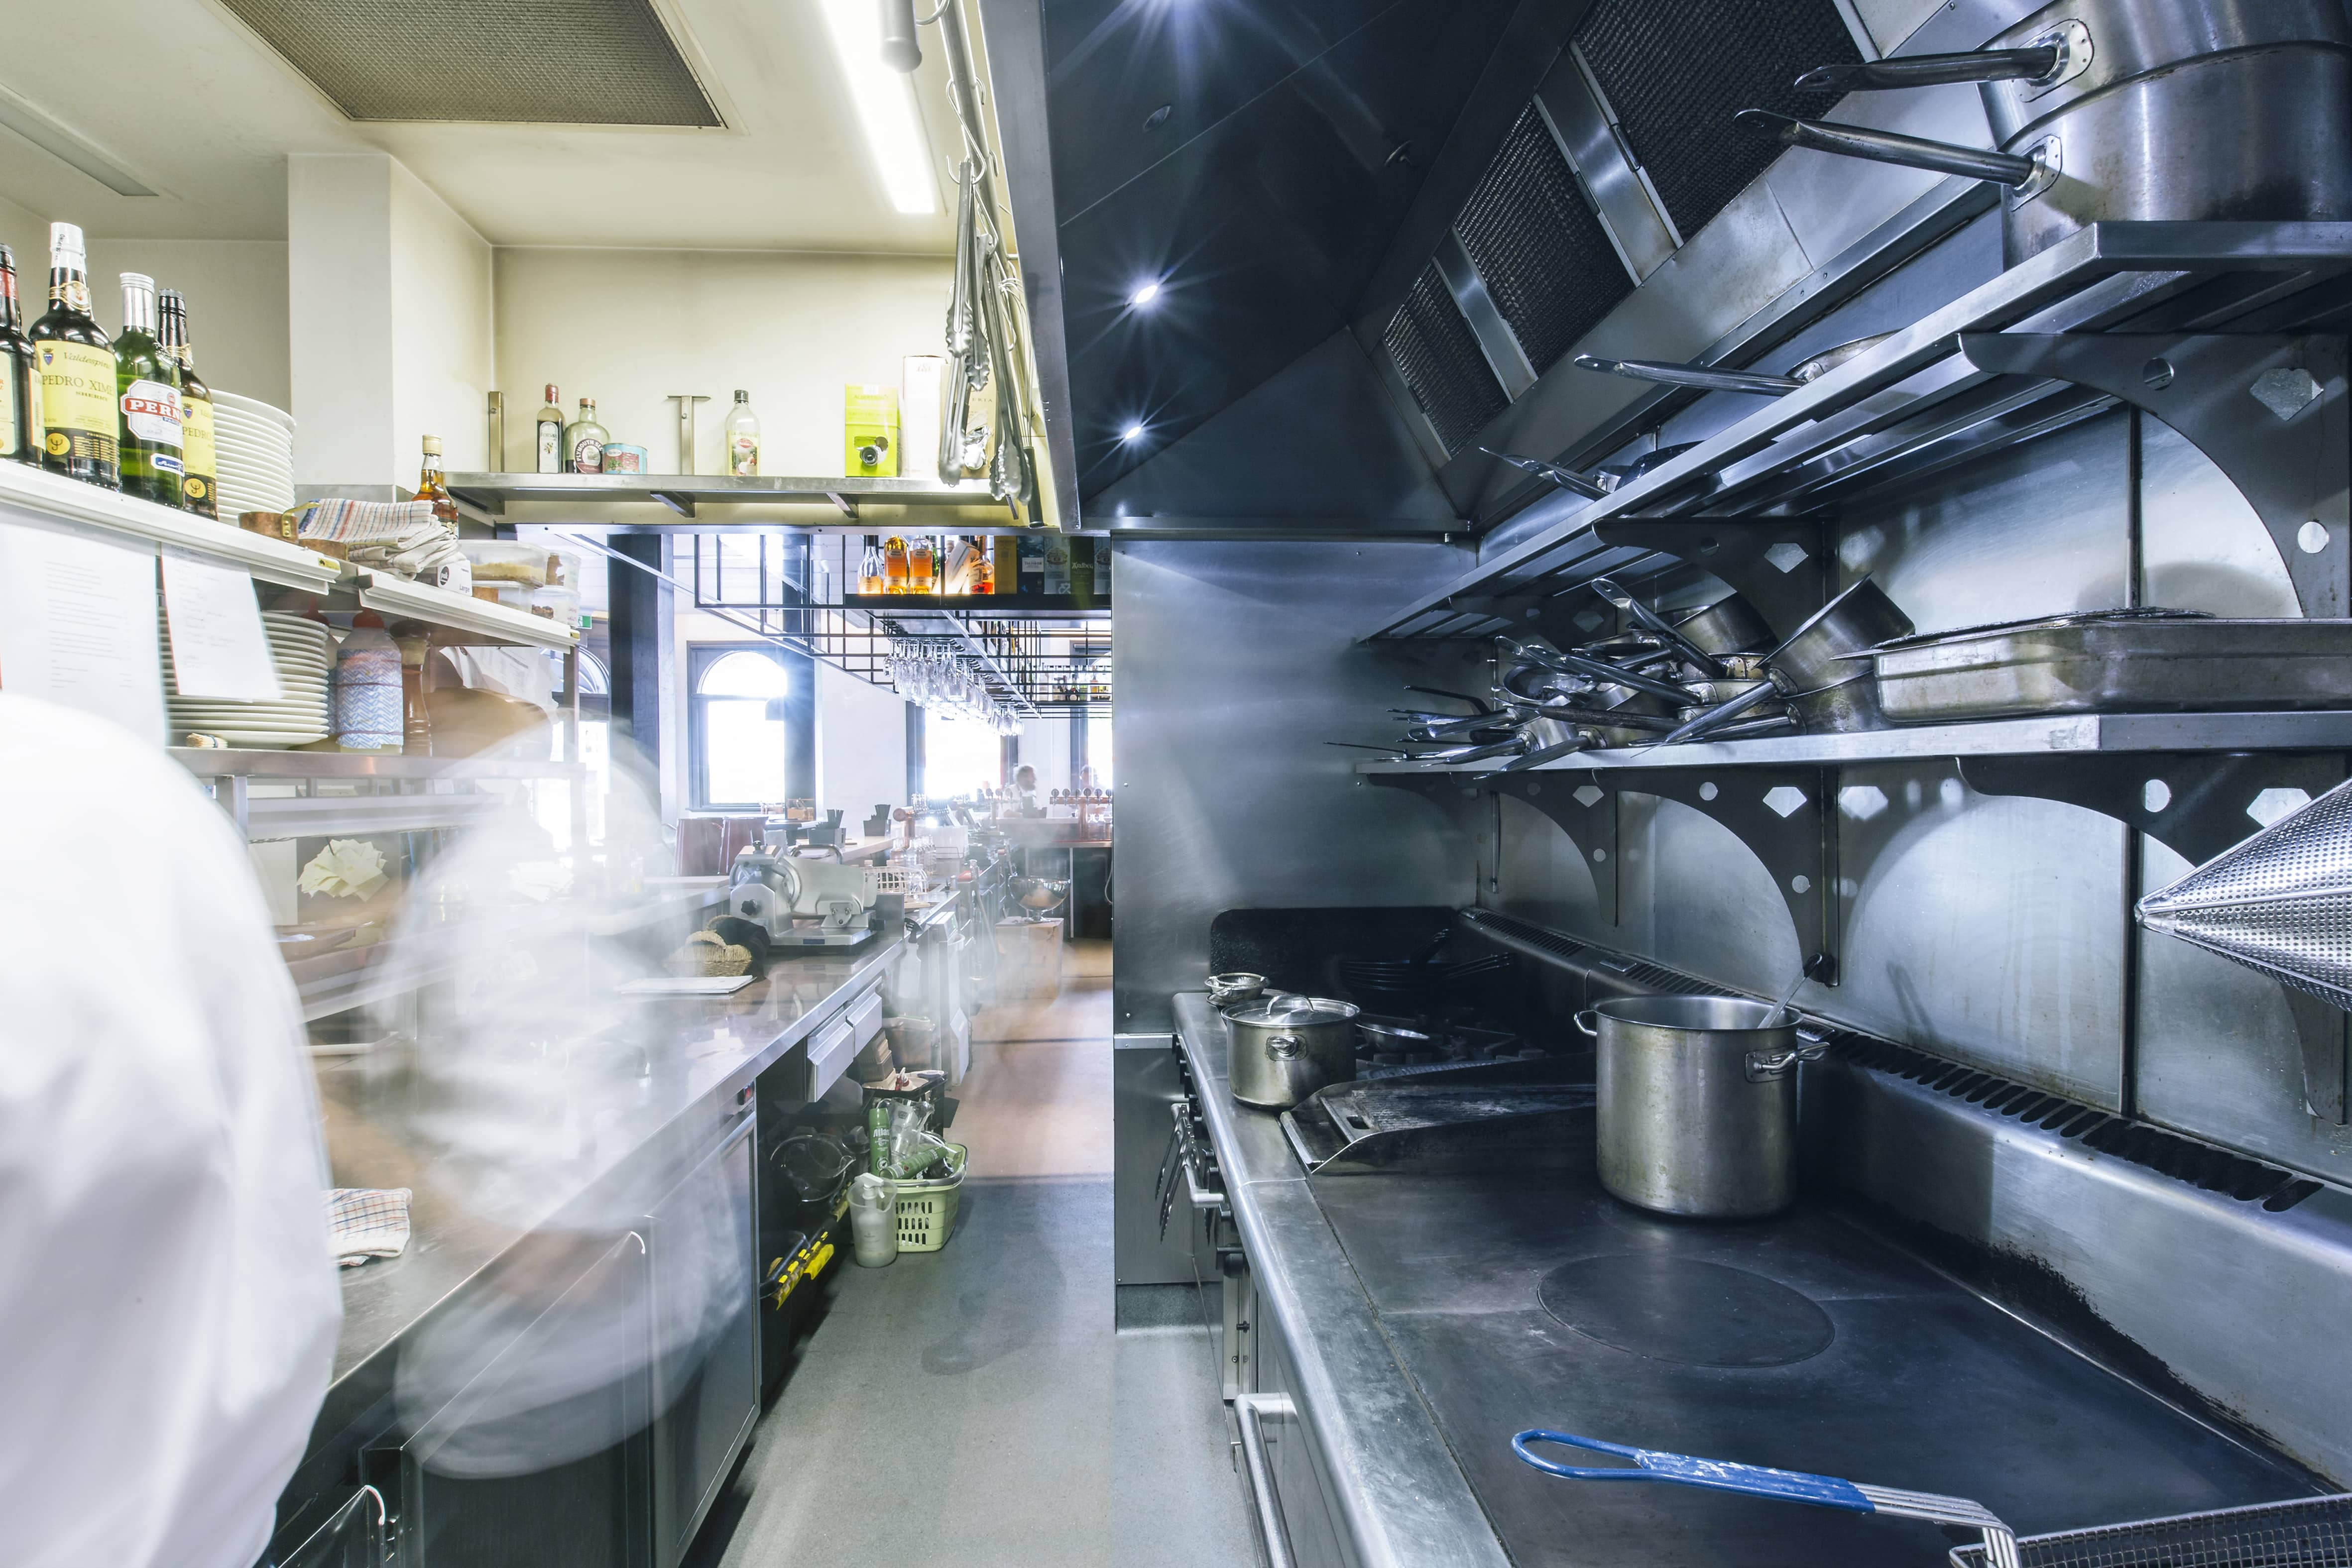 Commercial restaurant kitchen with stove tops & chefs